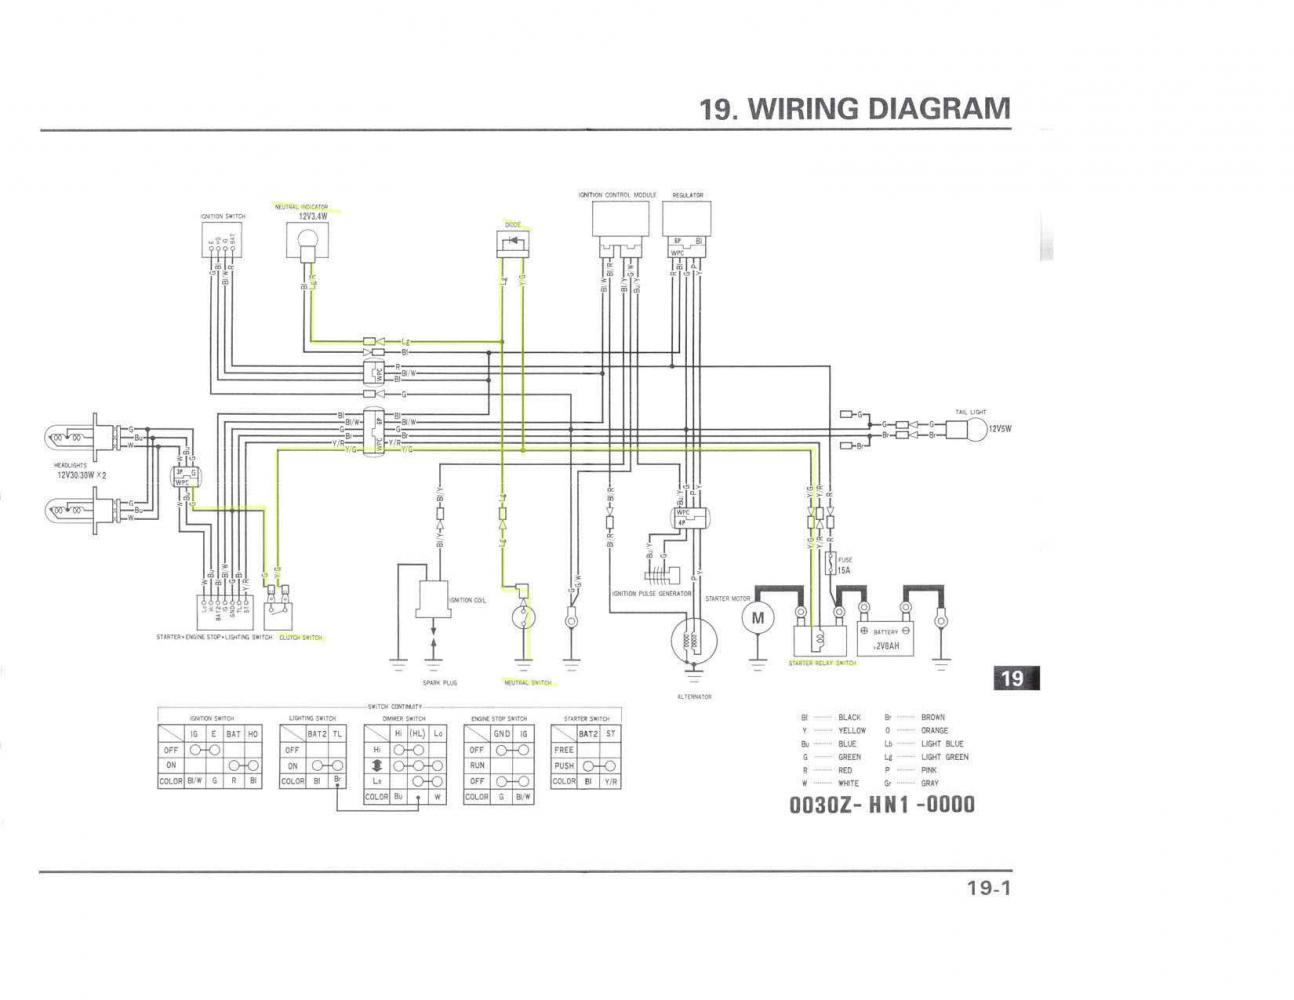 hight resolution of 400ex wiring harness wiring diagram schematics ignition schematic diagram 400ex ignition diagram